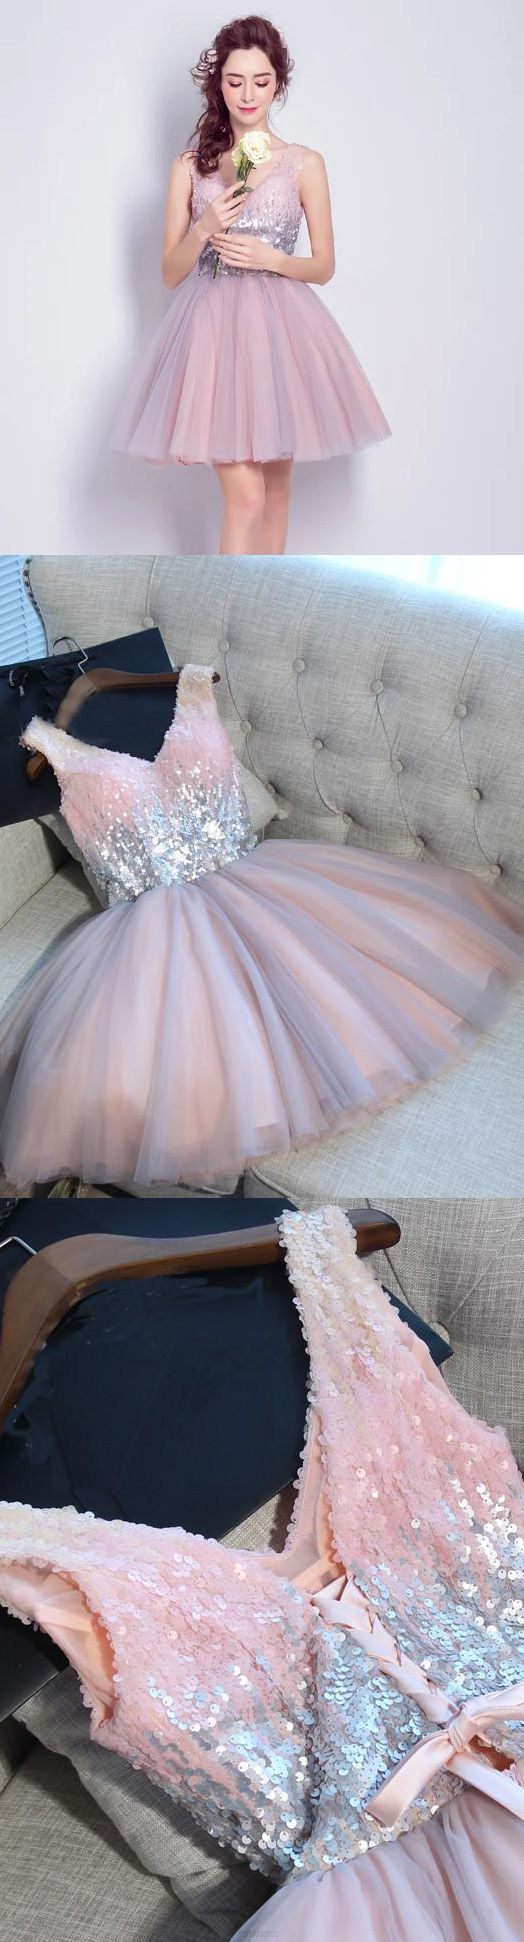 Cheap Prom Dresses, Short Prom Dresses, Prom Dresses Cheap, Pink Prom Dresses, Cheap Short Prom Dresses, Cheap Homecoming Dresses, Prom Dresses Short, Cheap Prom Dresses Online, Pink Homecoming Dresses, Short Pink Prom Dresses, Homecoming Dresses Cheap, Short Homecoming Dresses, A-line/Princess Party Dresses, Short Party Dresses, Short Pink Party Dresses With Bandage Mini V-Neck Sale Online